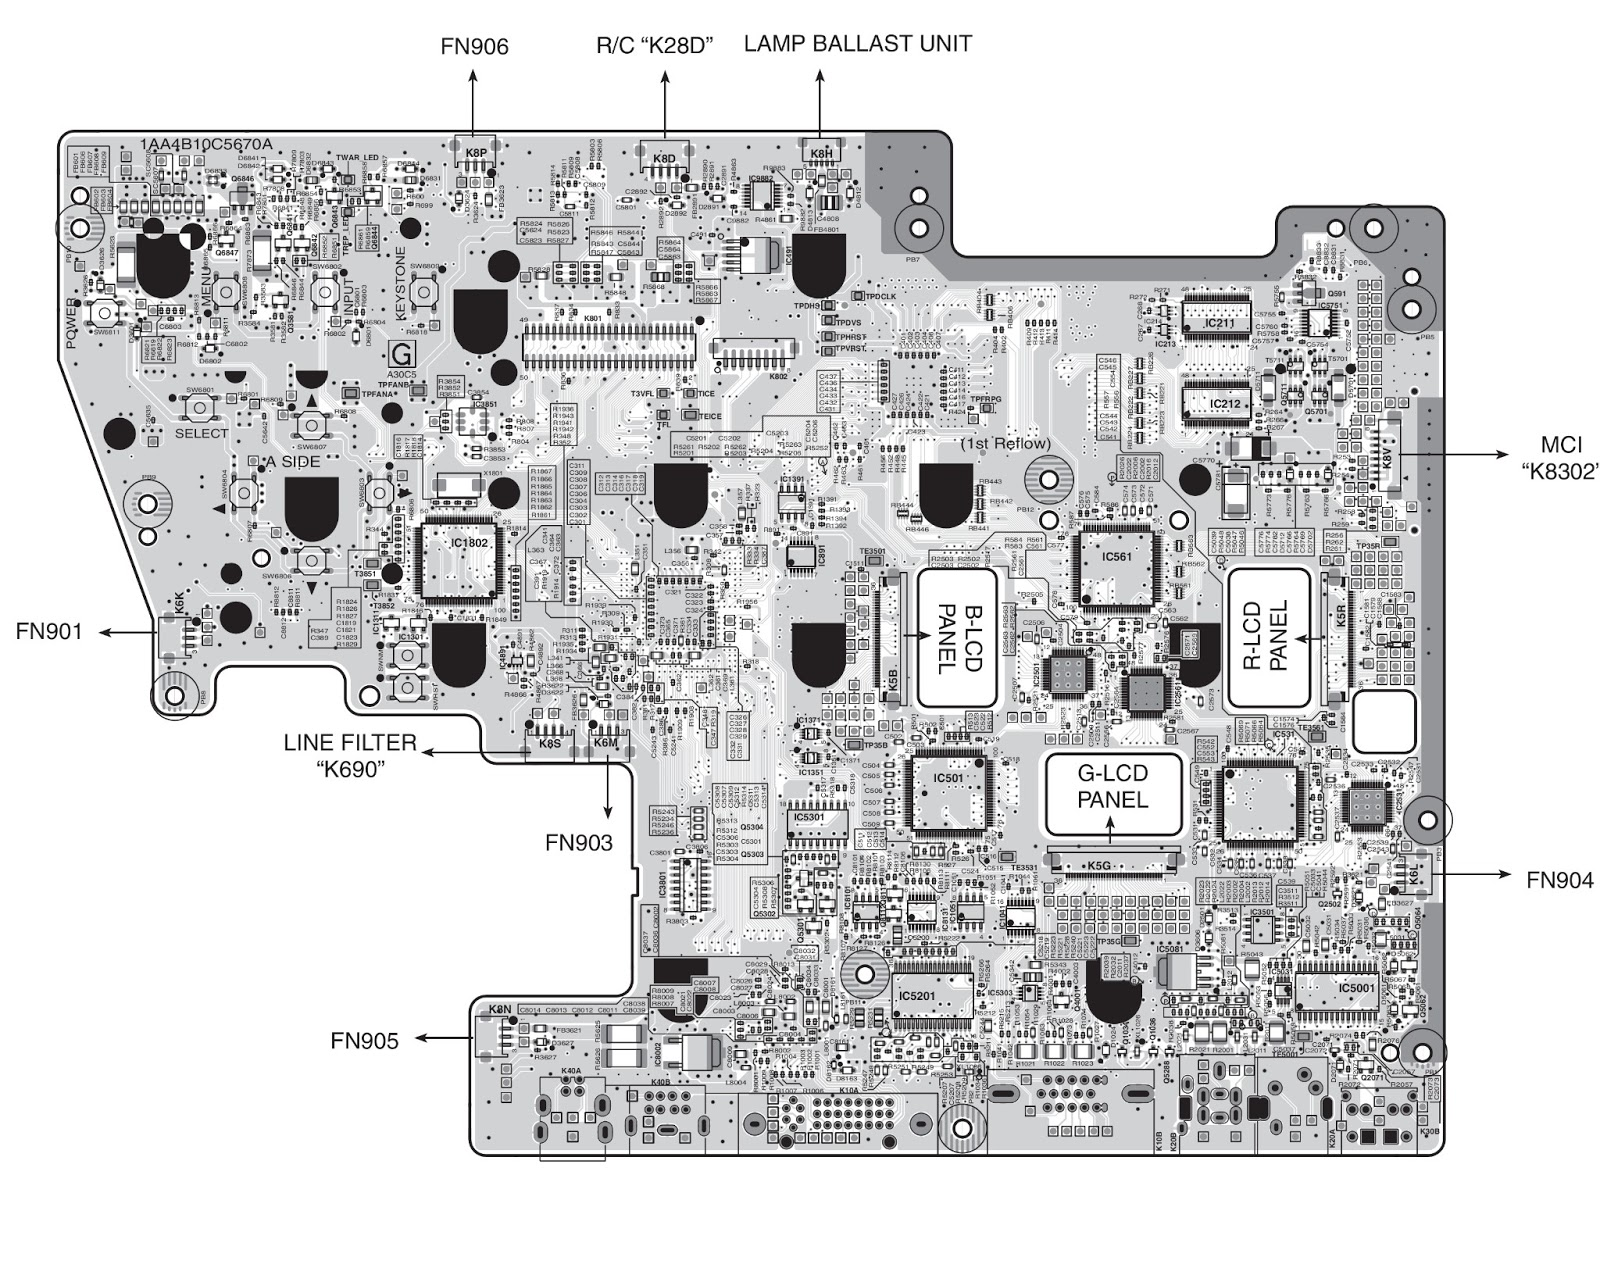 Sanyo Plc Xu87 Projector Power Supply Schematic Diagram Block Along With An Overview Of Architectures Side B